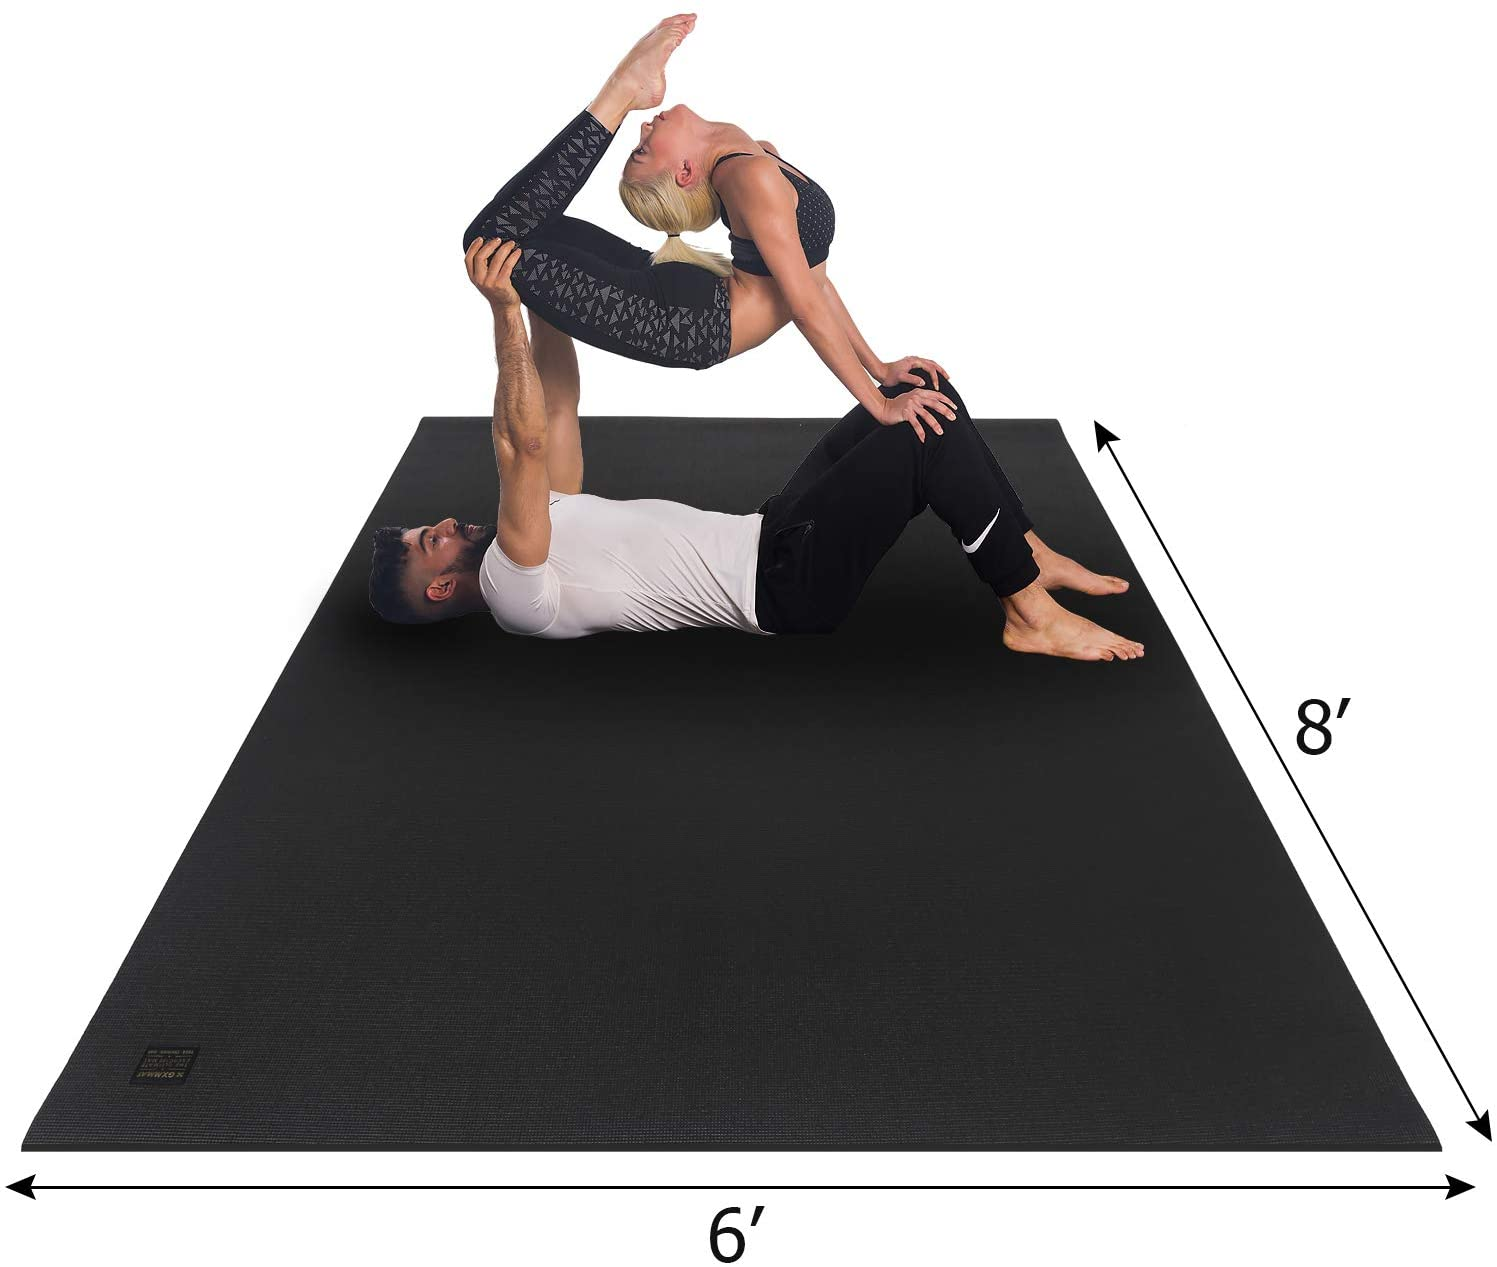 Review of GXMMAT Extra Large Yoga Mat 6'x8'x7mm